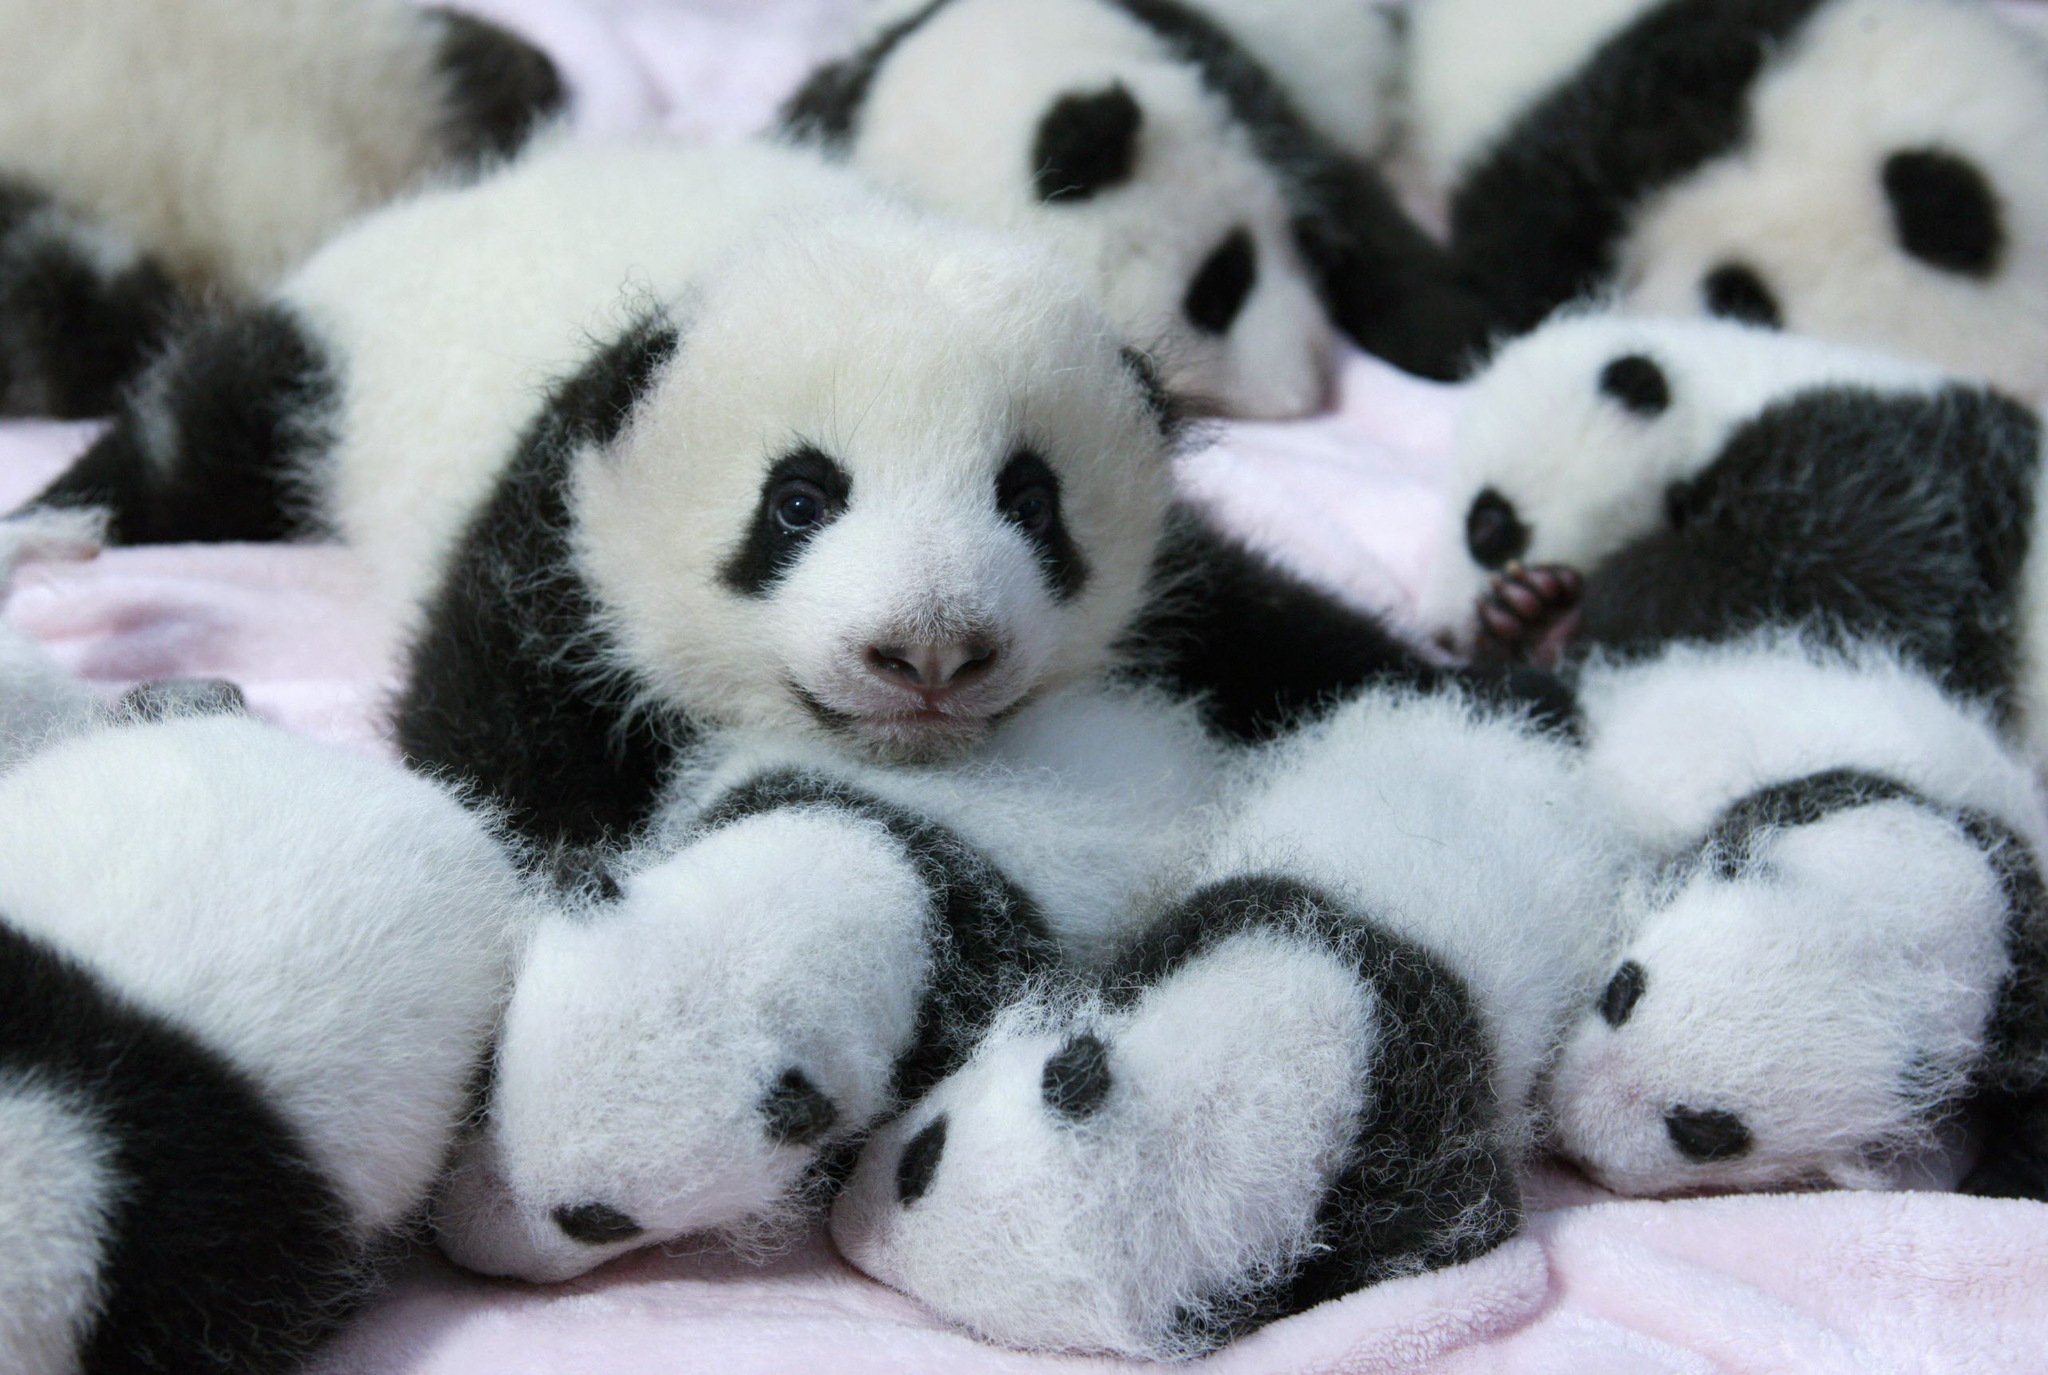 images of cute baby pandas - photo #20